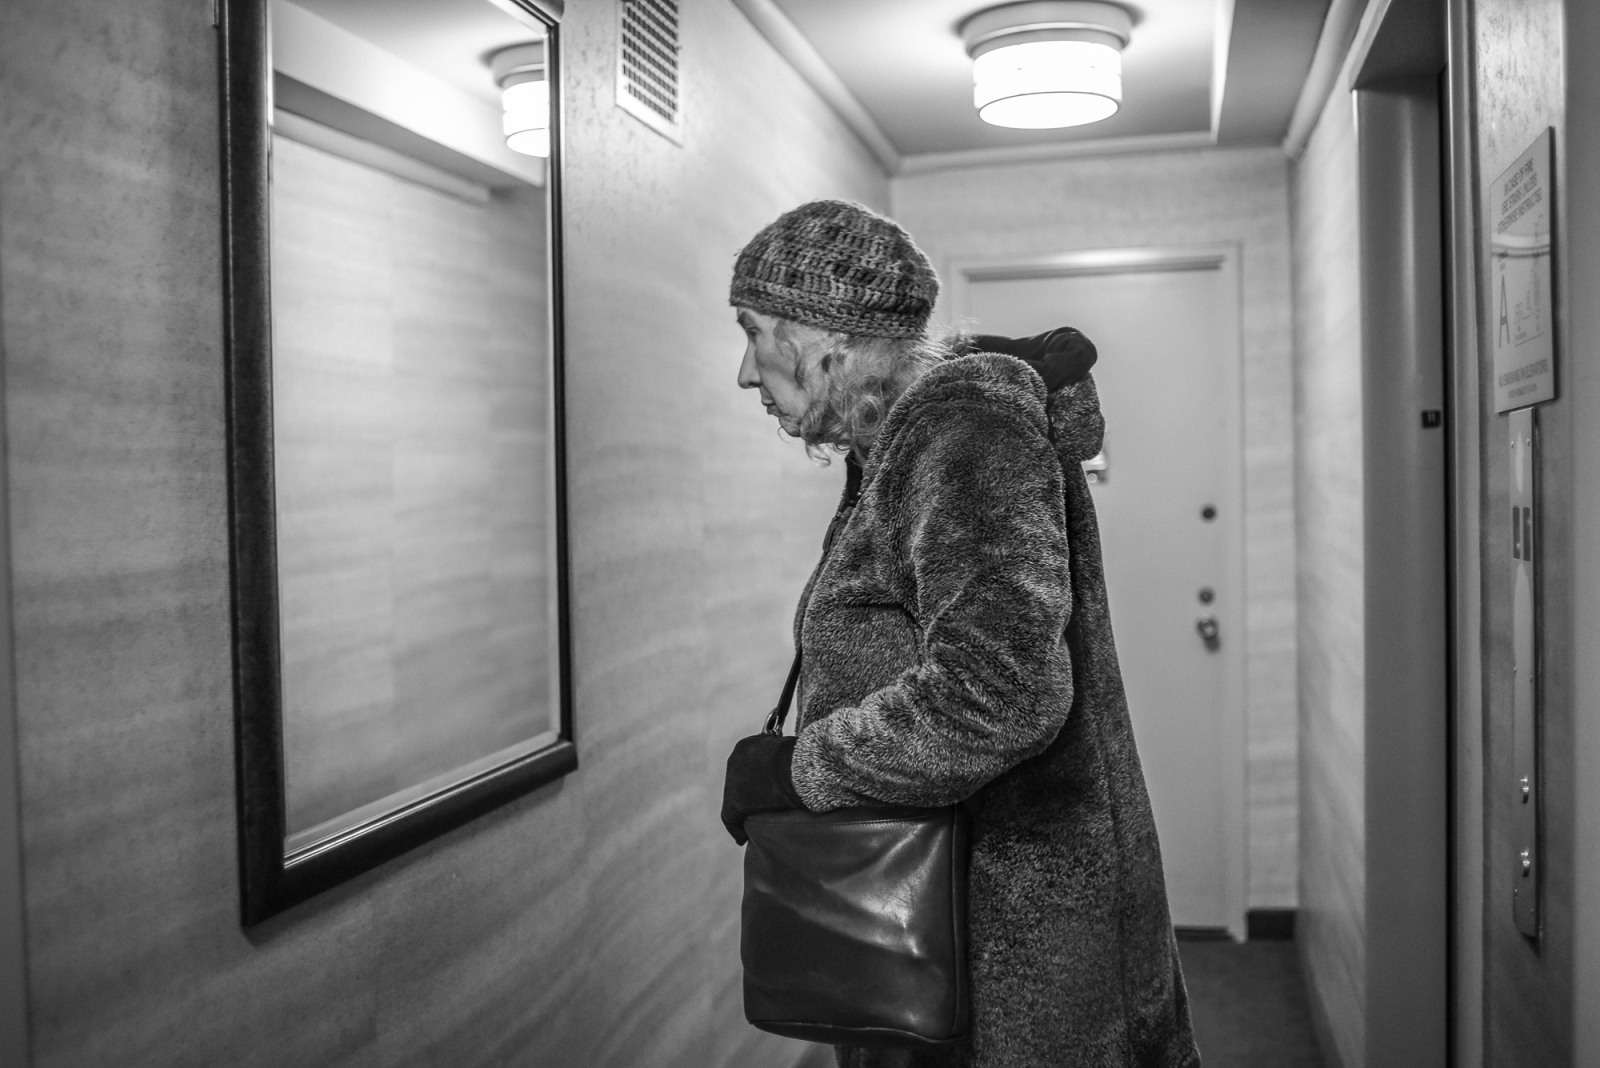 Jennifer checks herself in the hallway mirror of her apartment building before going out to run errands in New York City, Jan. 2, 2017. After ten years of transitioning, Jennifer, together with her partner, Michelle, has finally decided to undergo sex reassignment surgery. The procedure will take place in Philadelphia on January 11th.